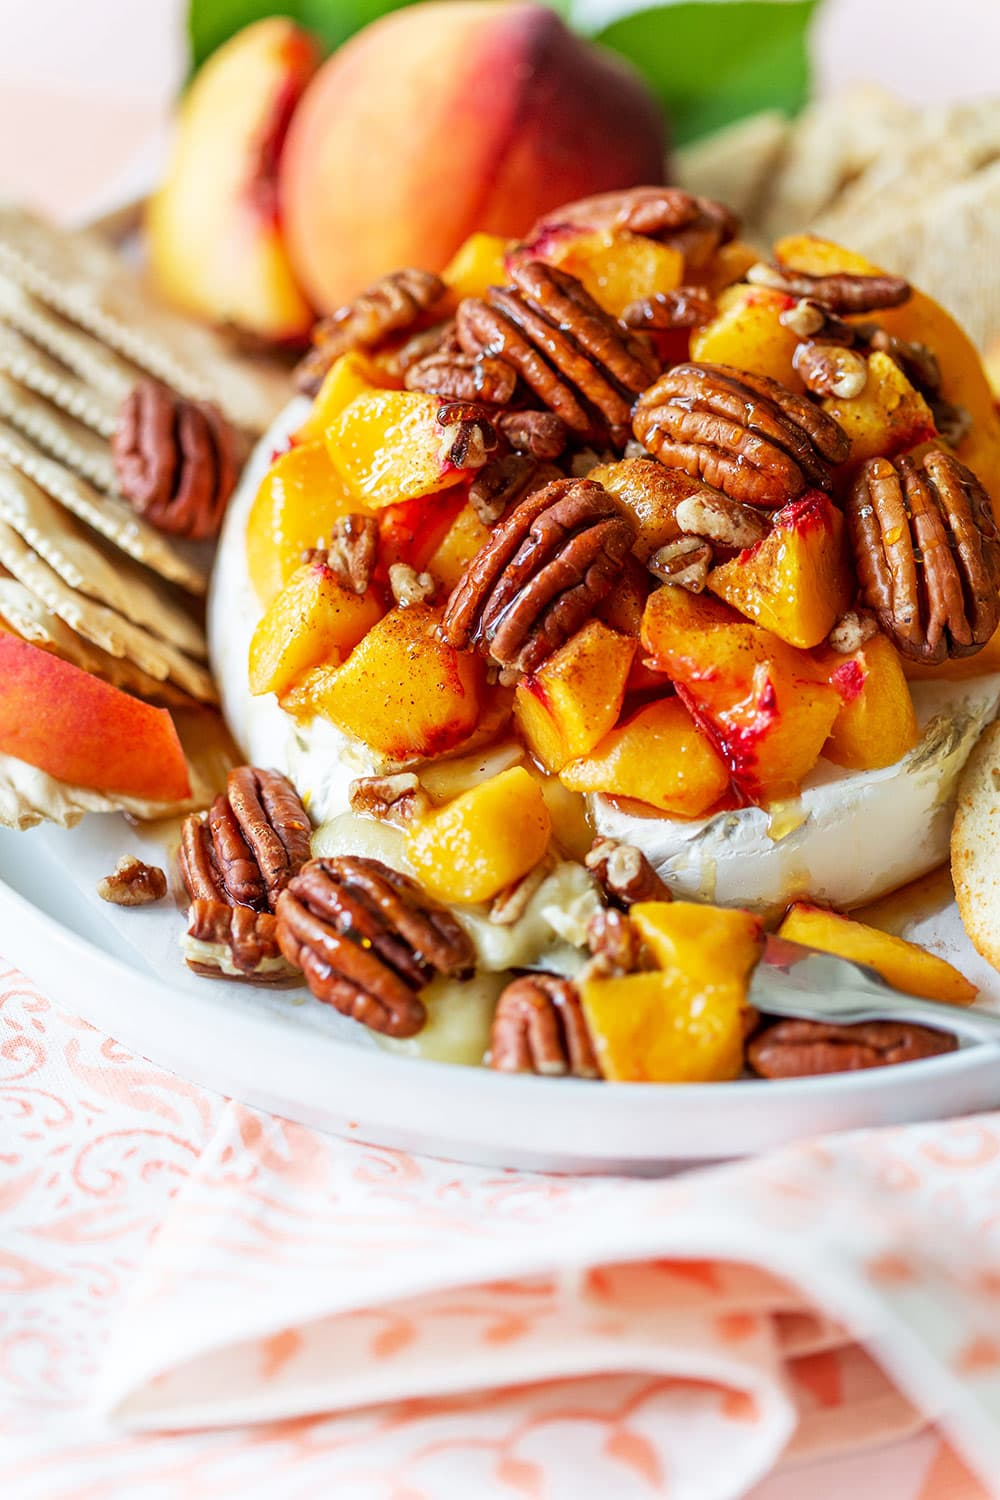 Peach Baked Brie with Pecans